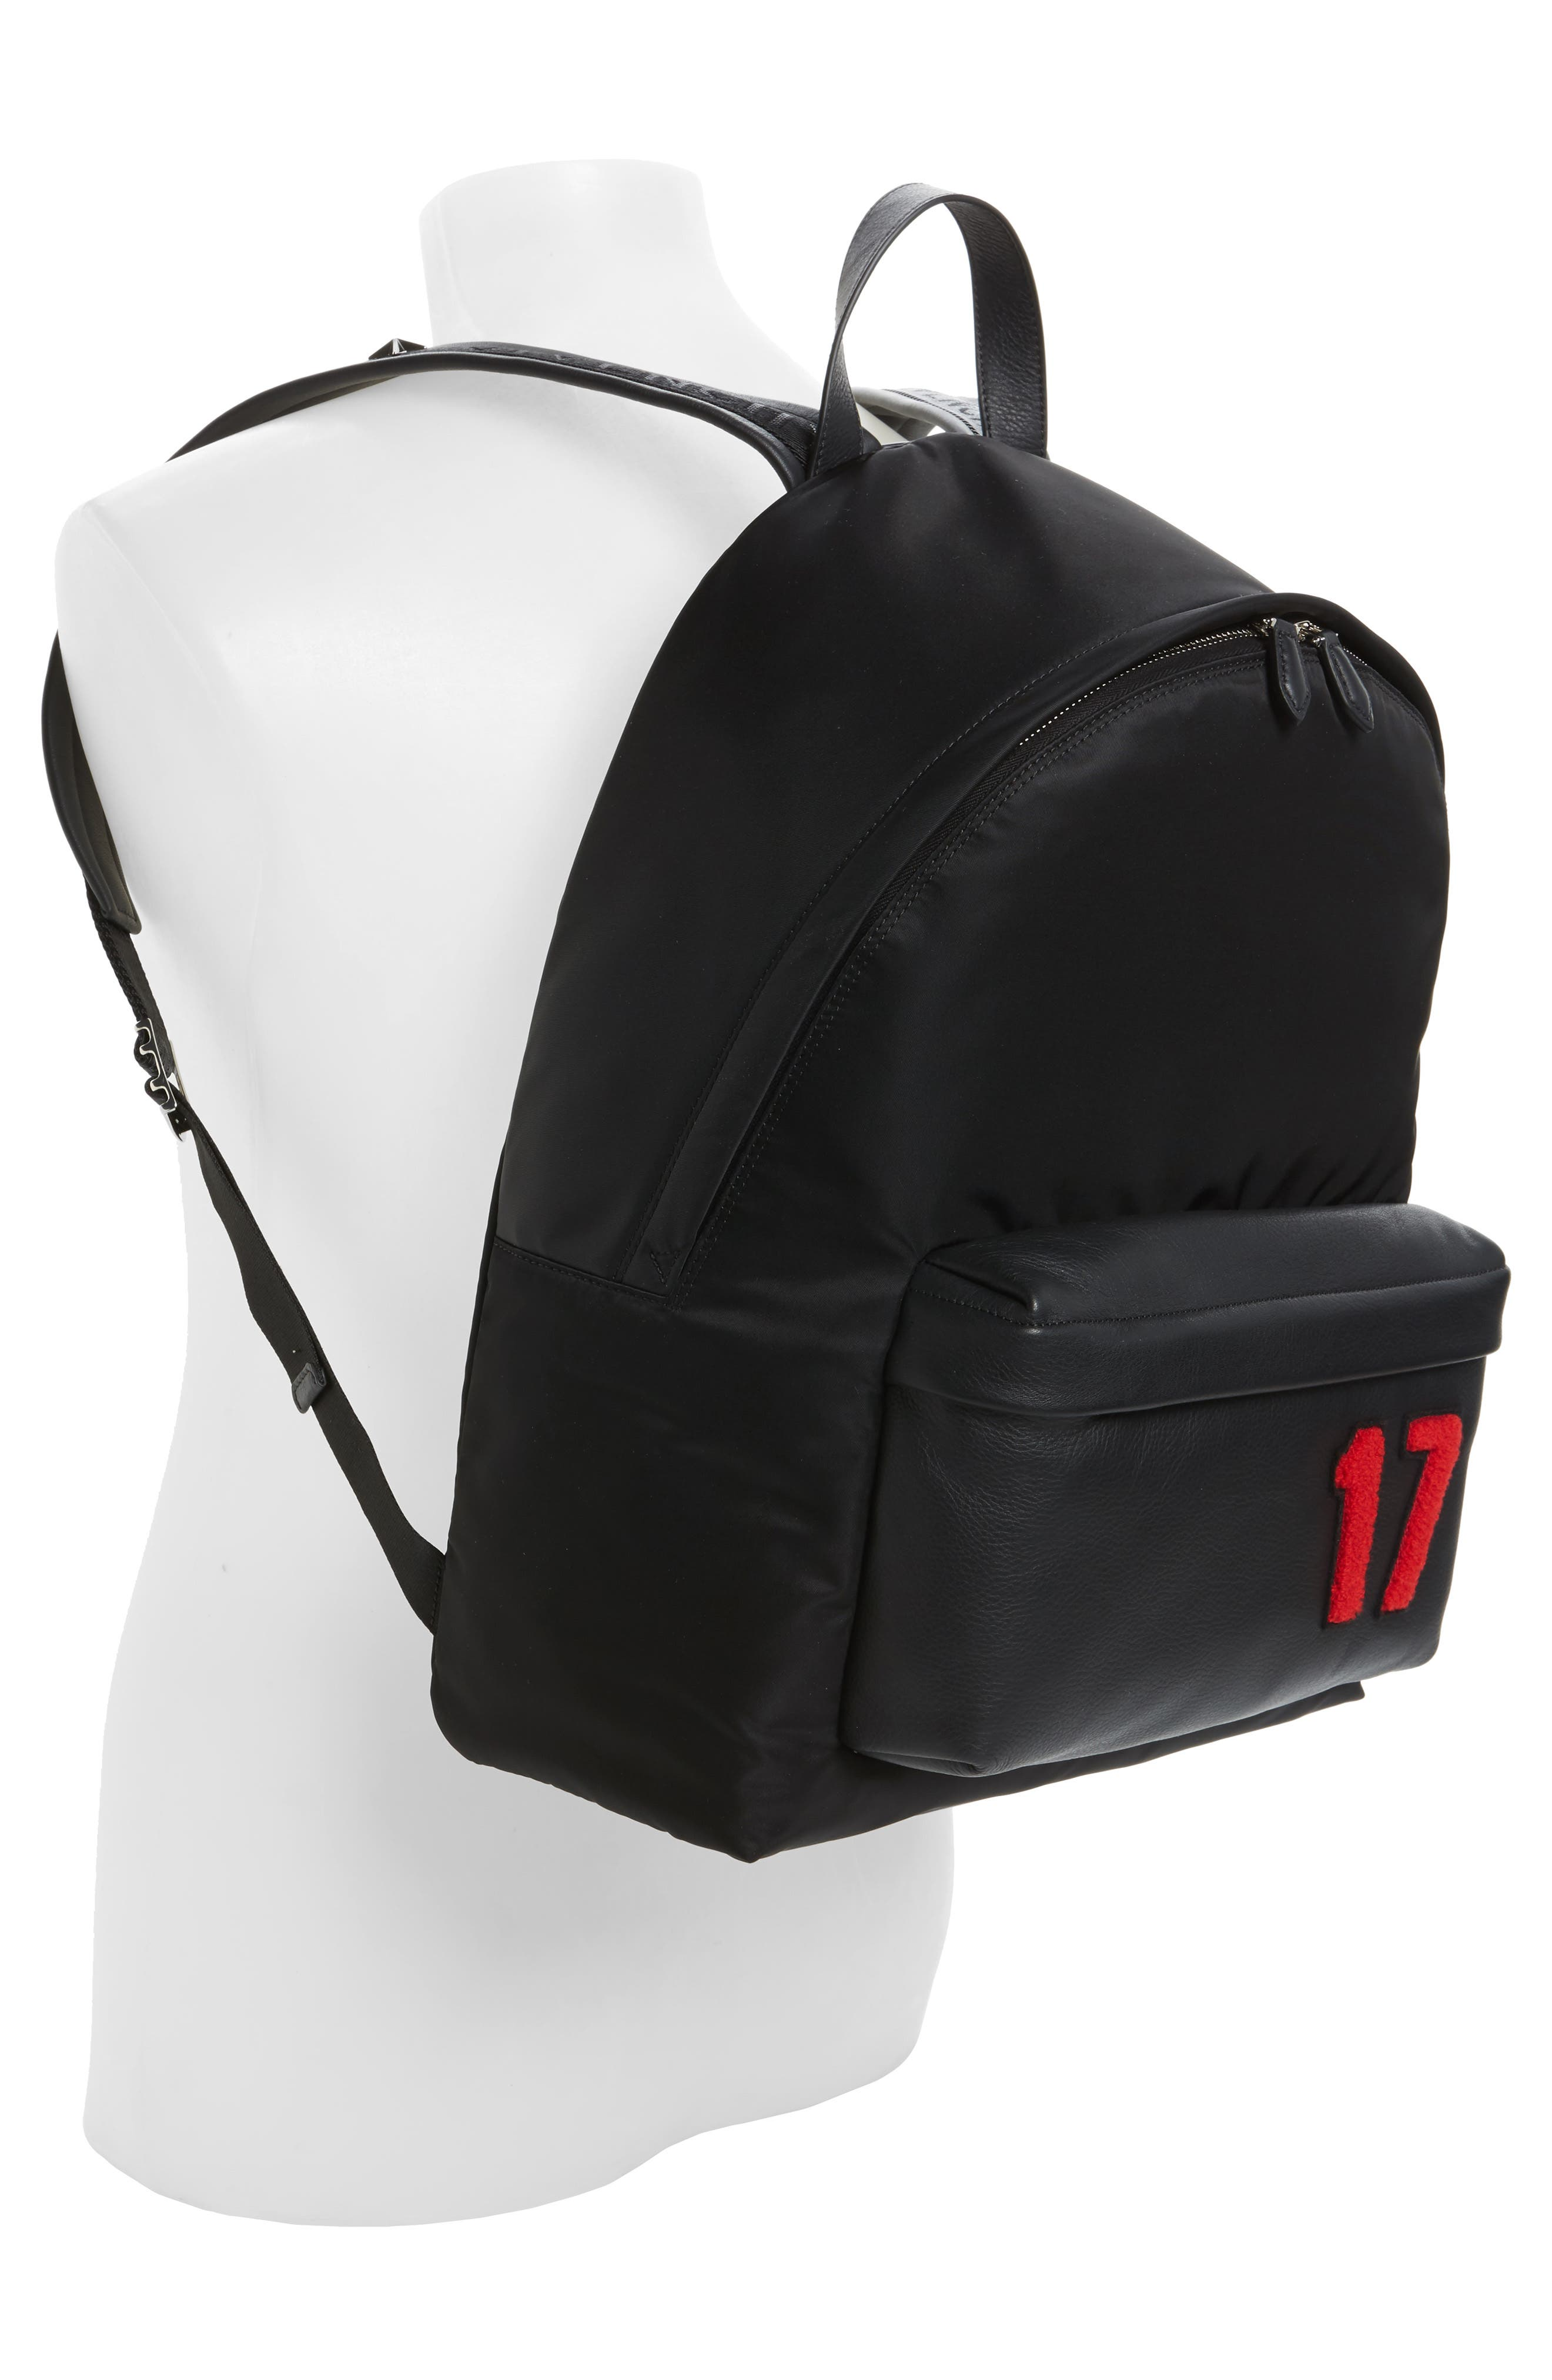 17 Patch Mix Media Backpack,                             Alternate thumbnail 2, color,                             Black/ Red